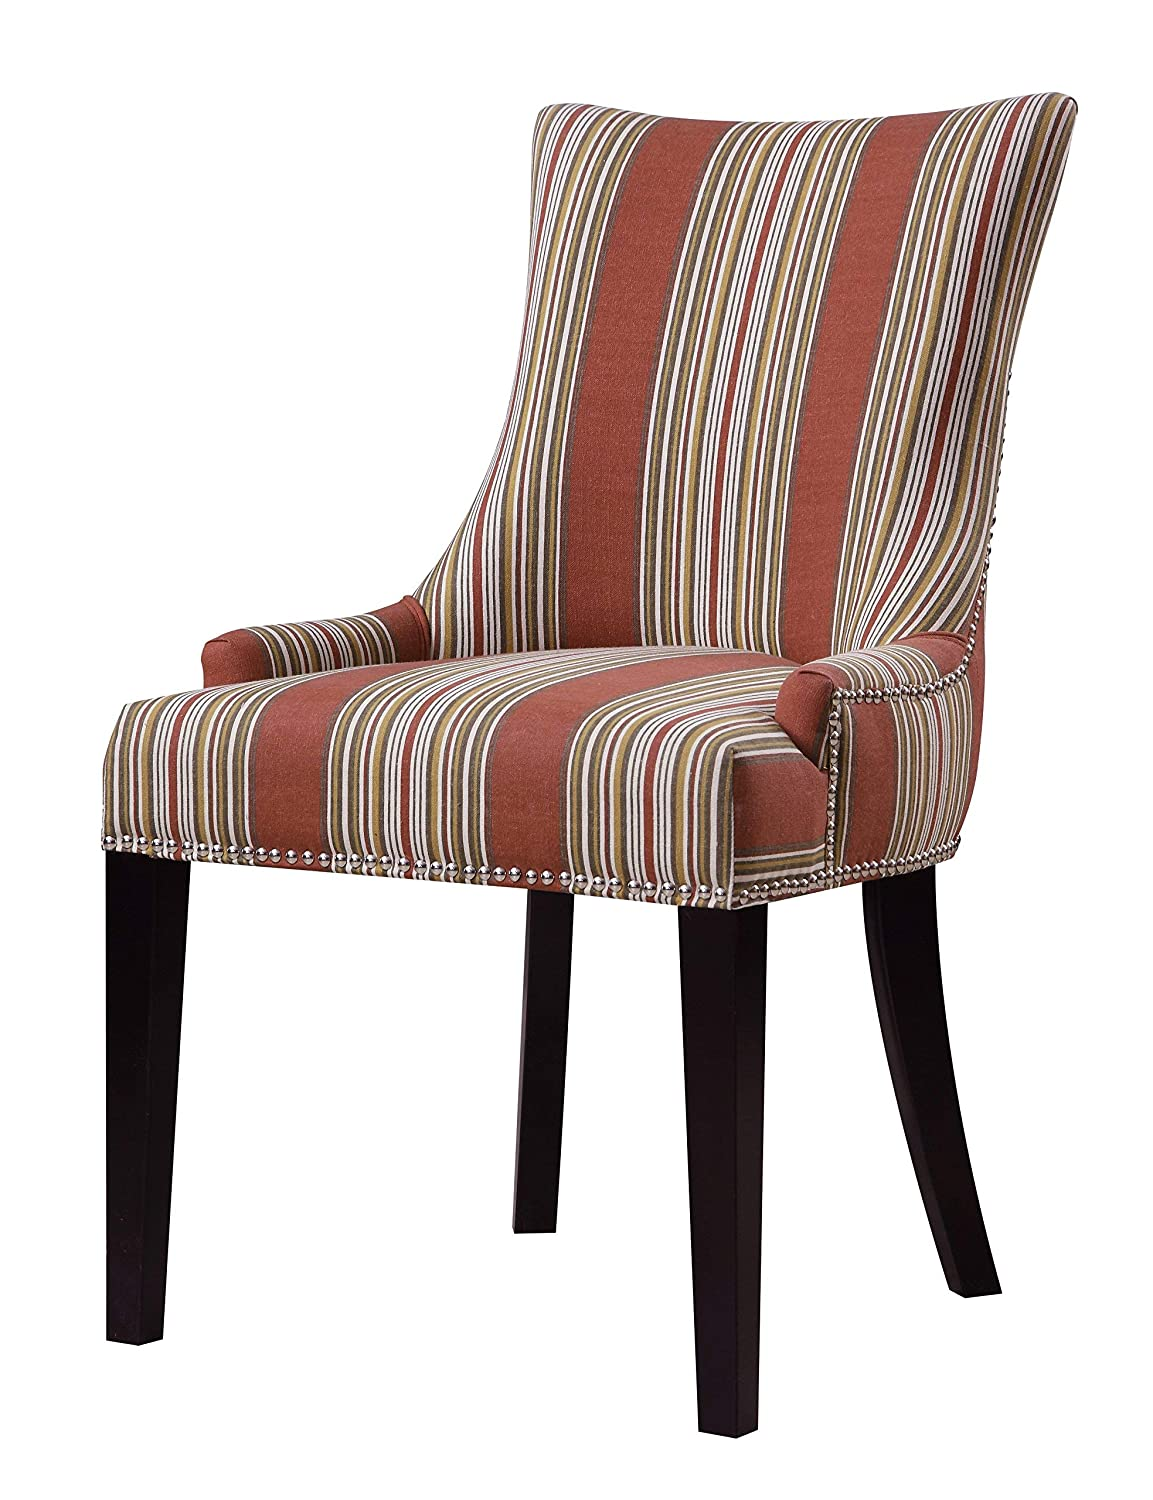 Navy 23.03 X 25.2 X 33.86 Pulaski DS-2520-900-393 Urban Accents Button Back Upholstered Dining Chair